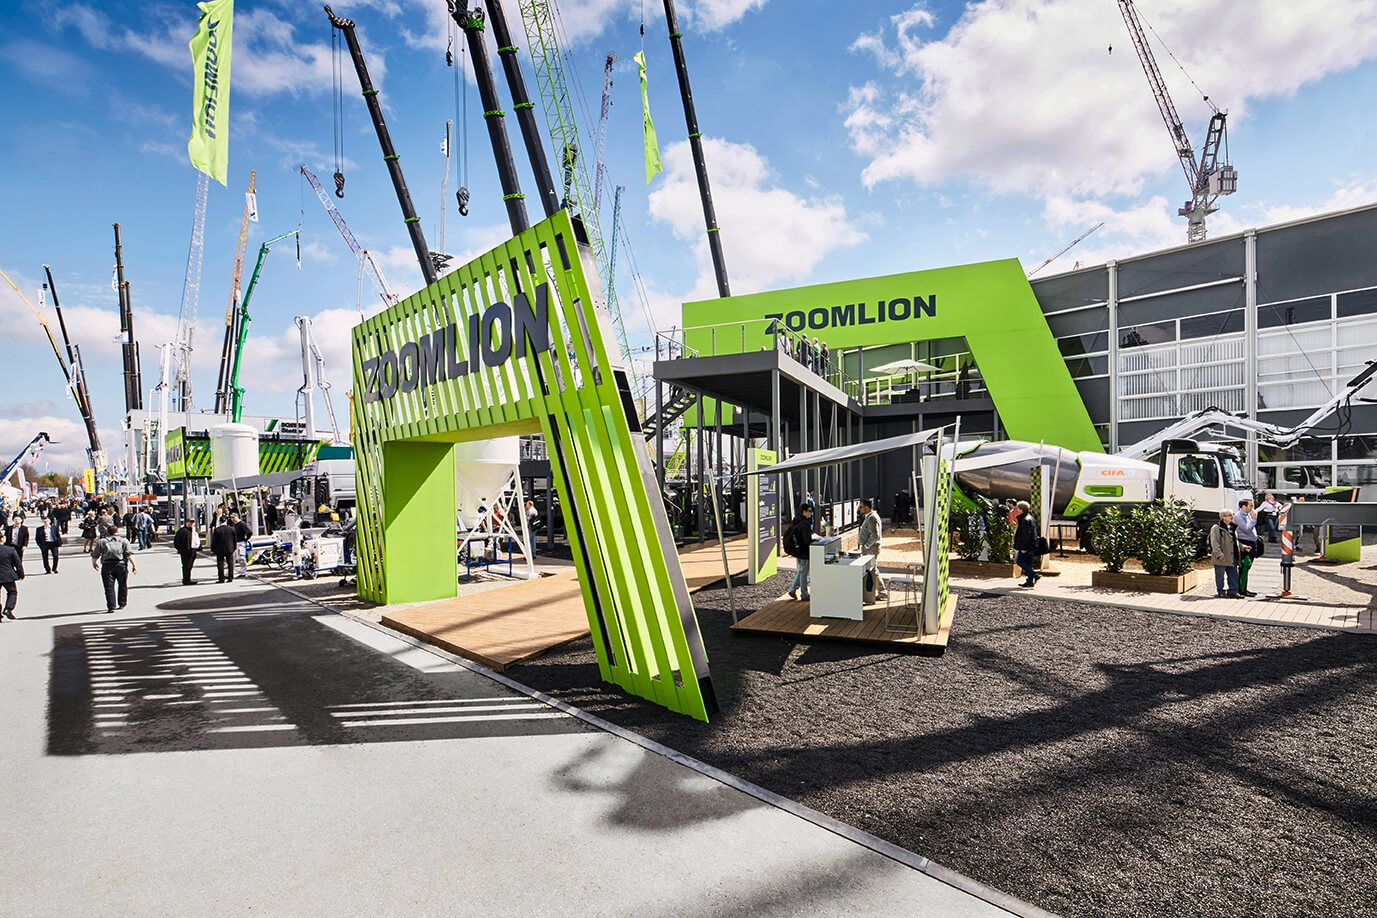 Zoomlion at the Bauma 2016